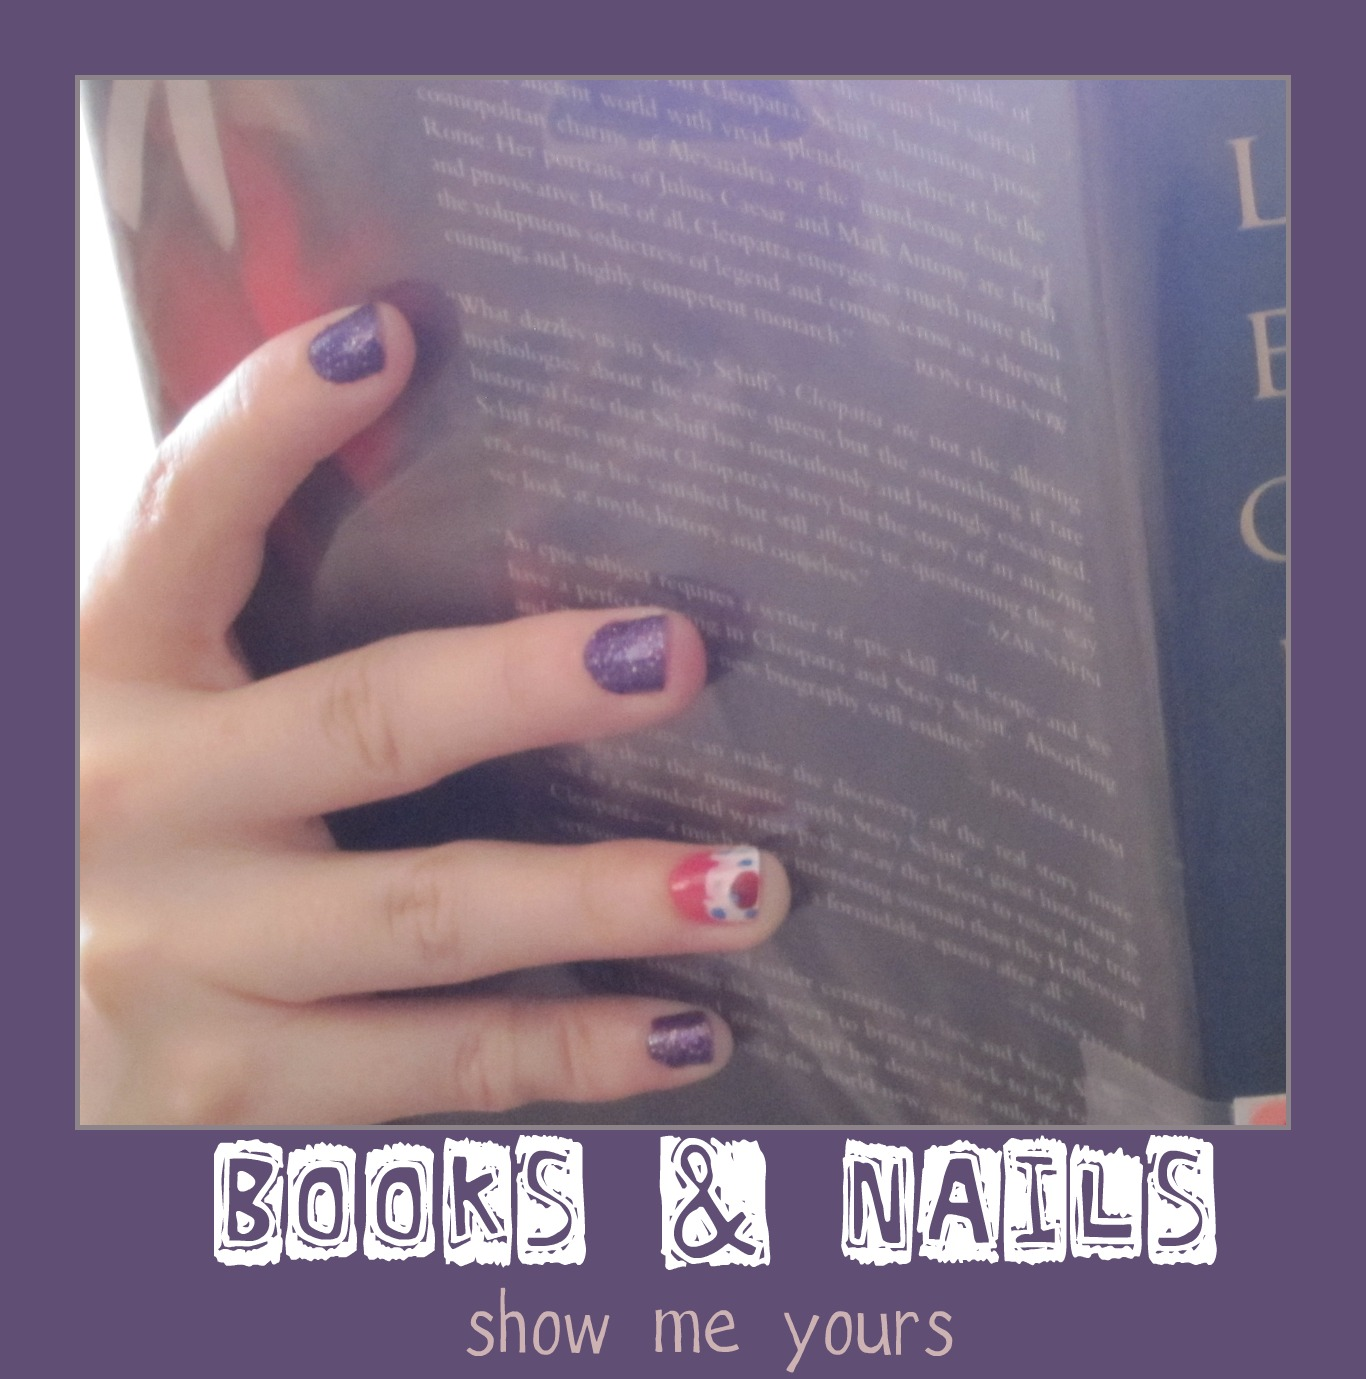 vvb32 reads: Books & Nails: Cleopatra by Stacy Schiff